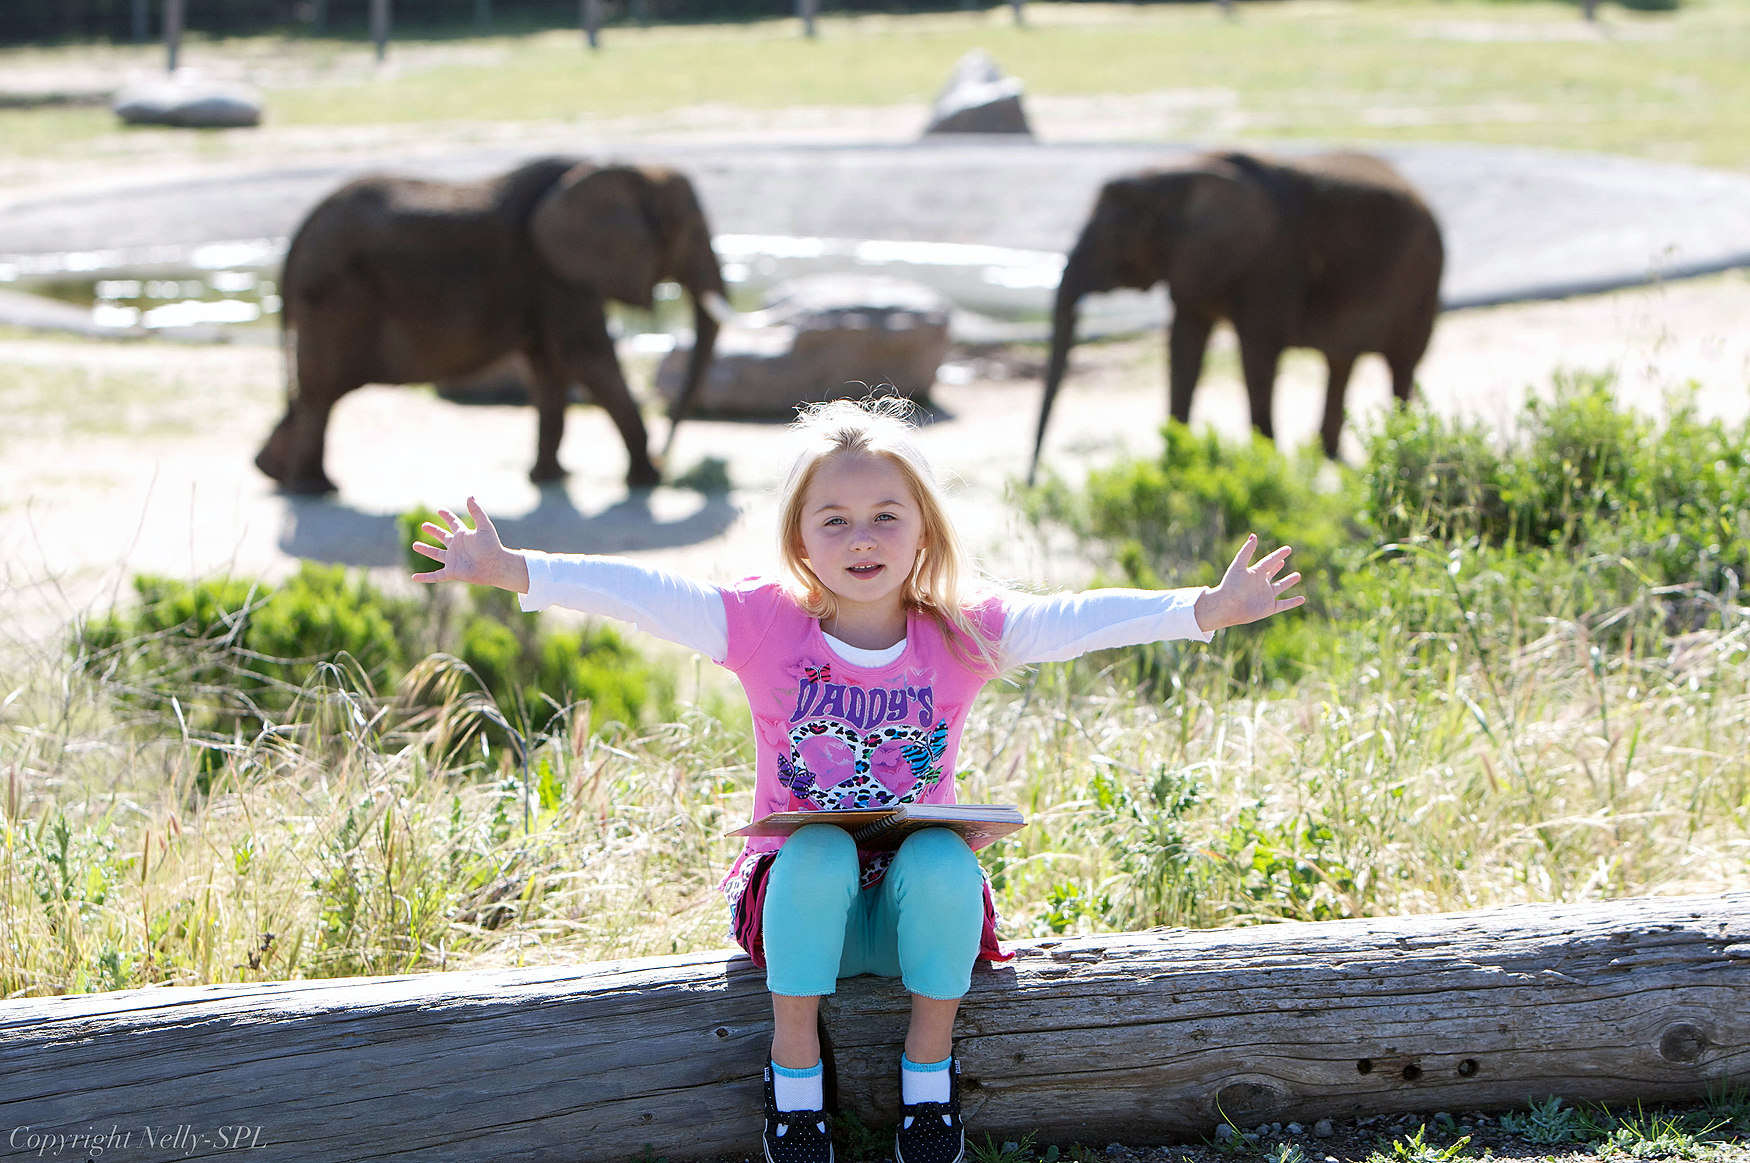 Kiala and the elephants